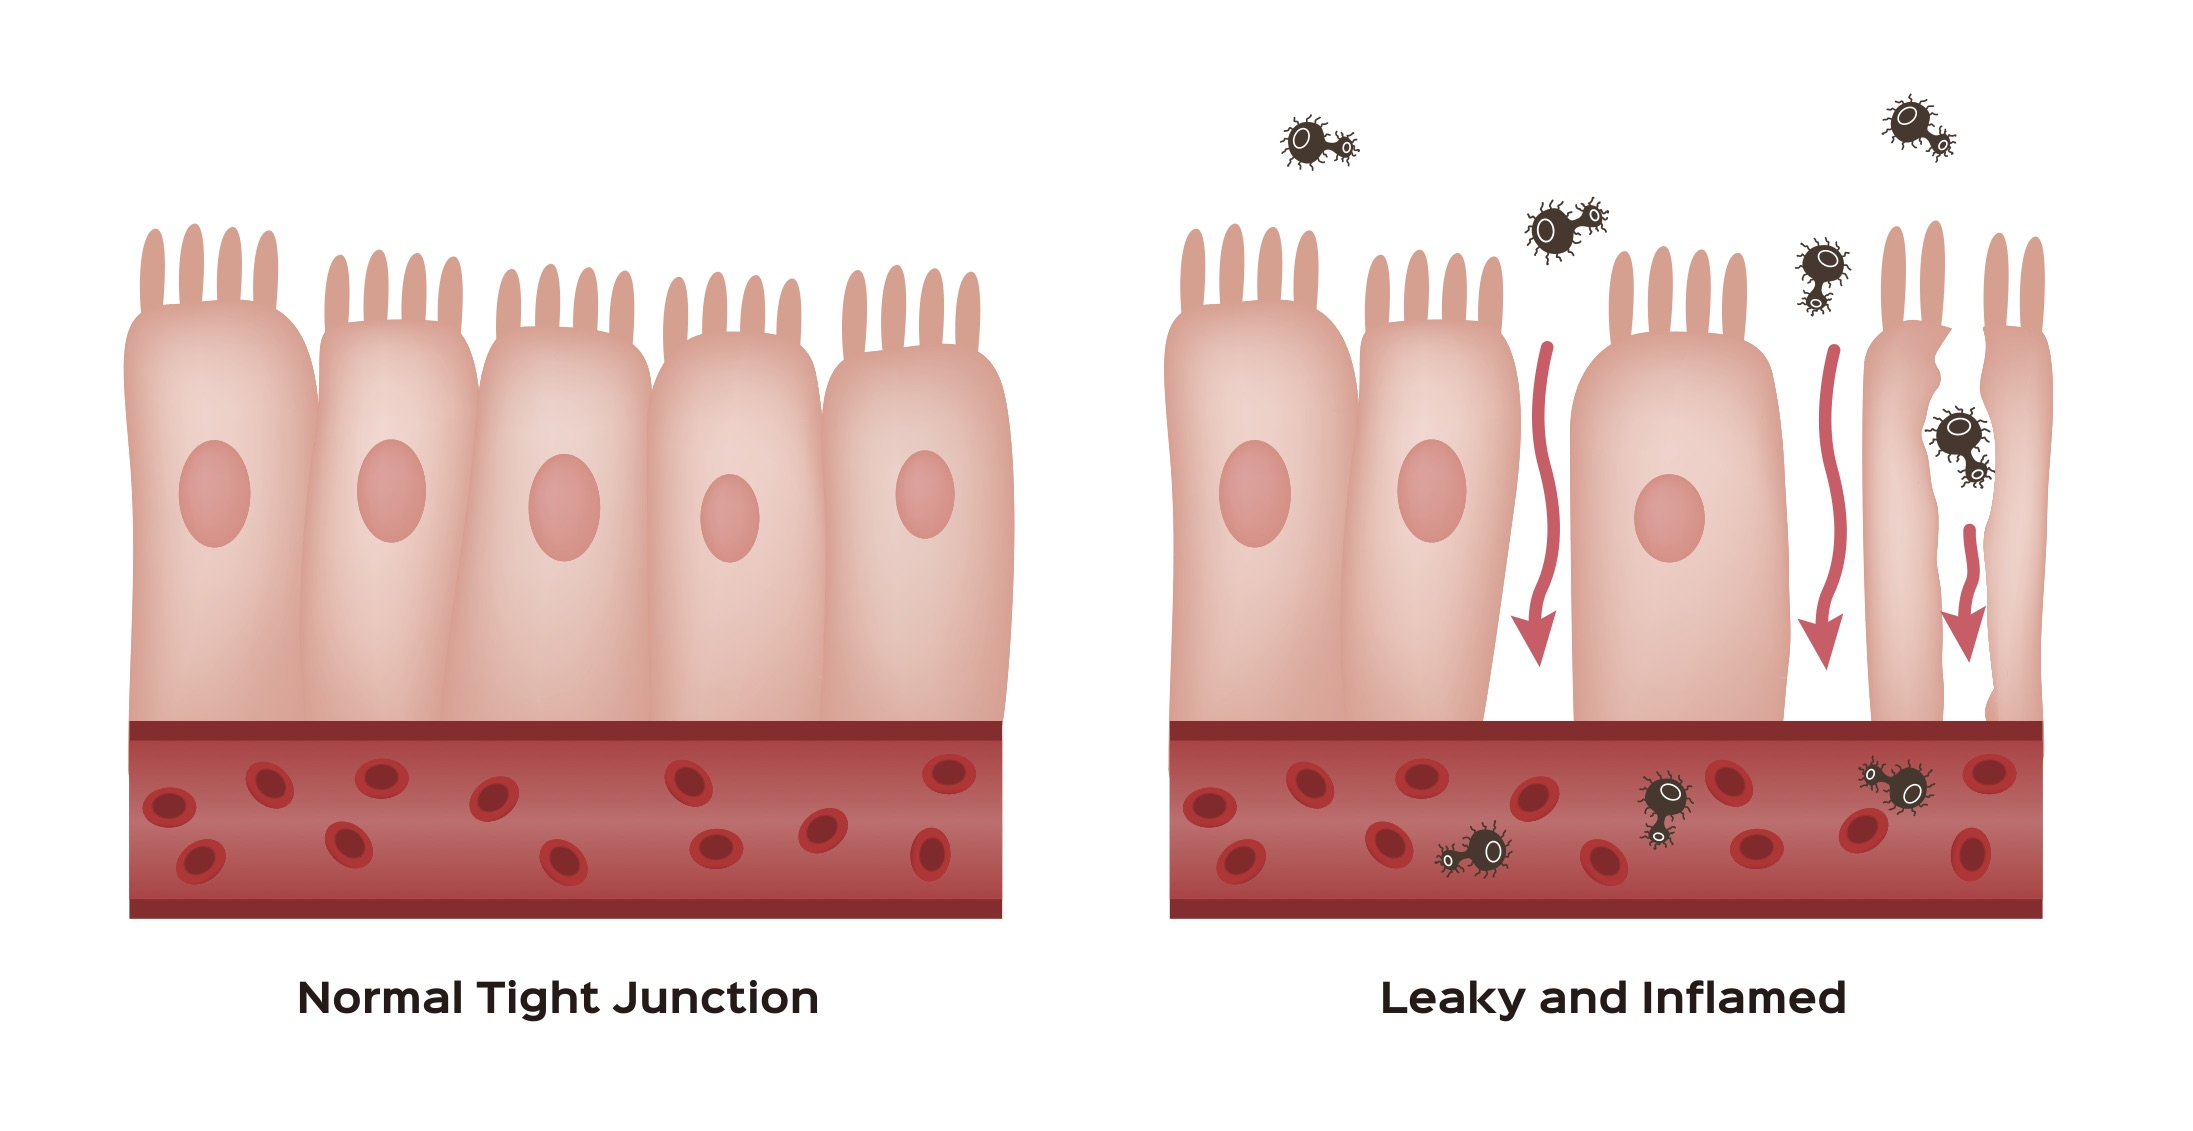 epithelial lining picture.jpg